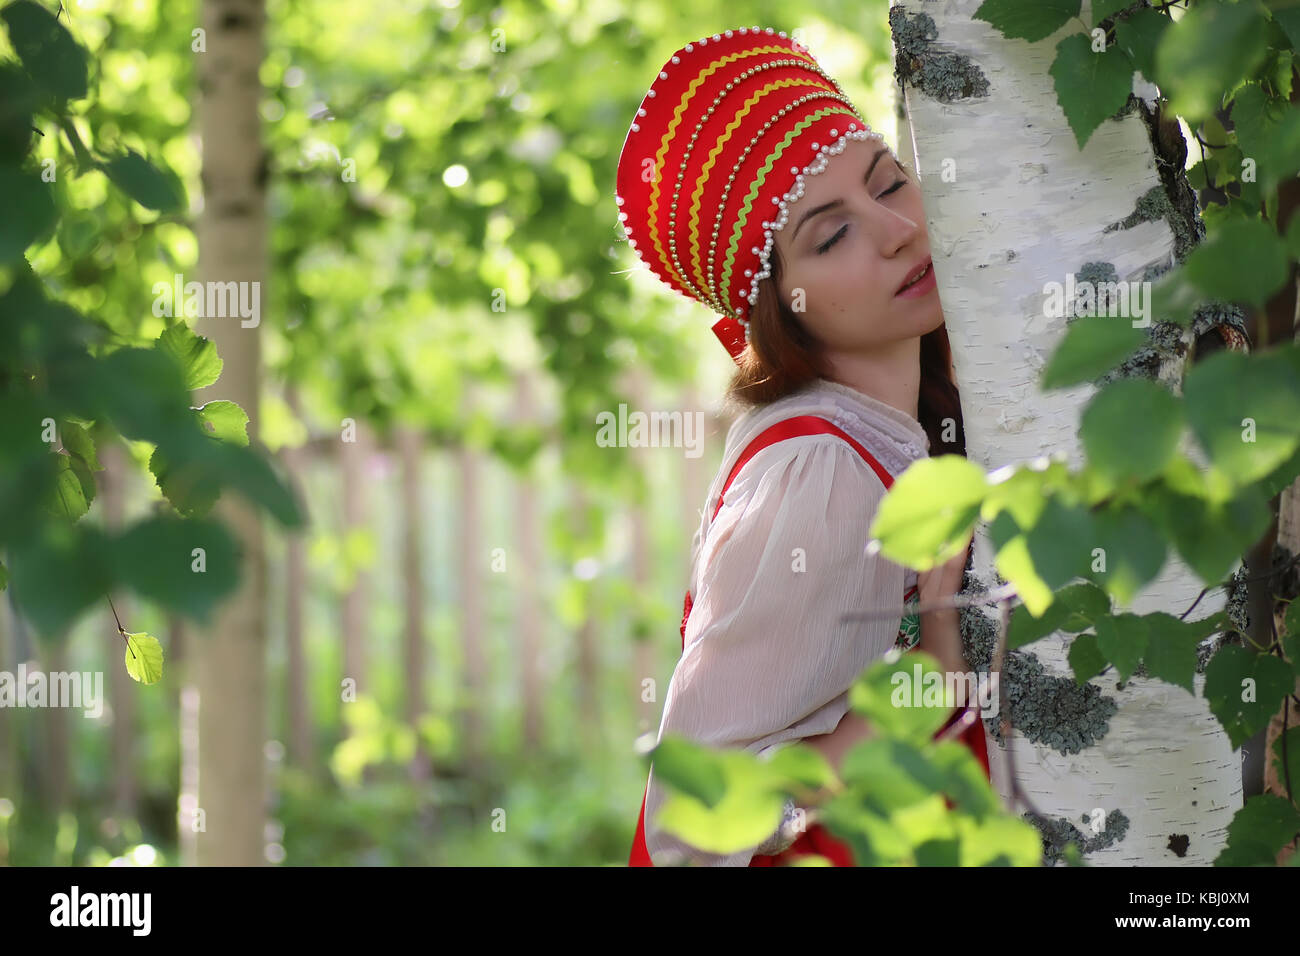 Slav in traditional dress hiding behind trees - Stock Image